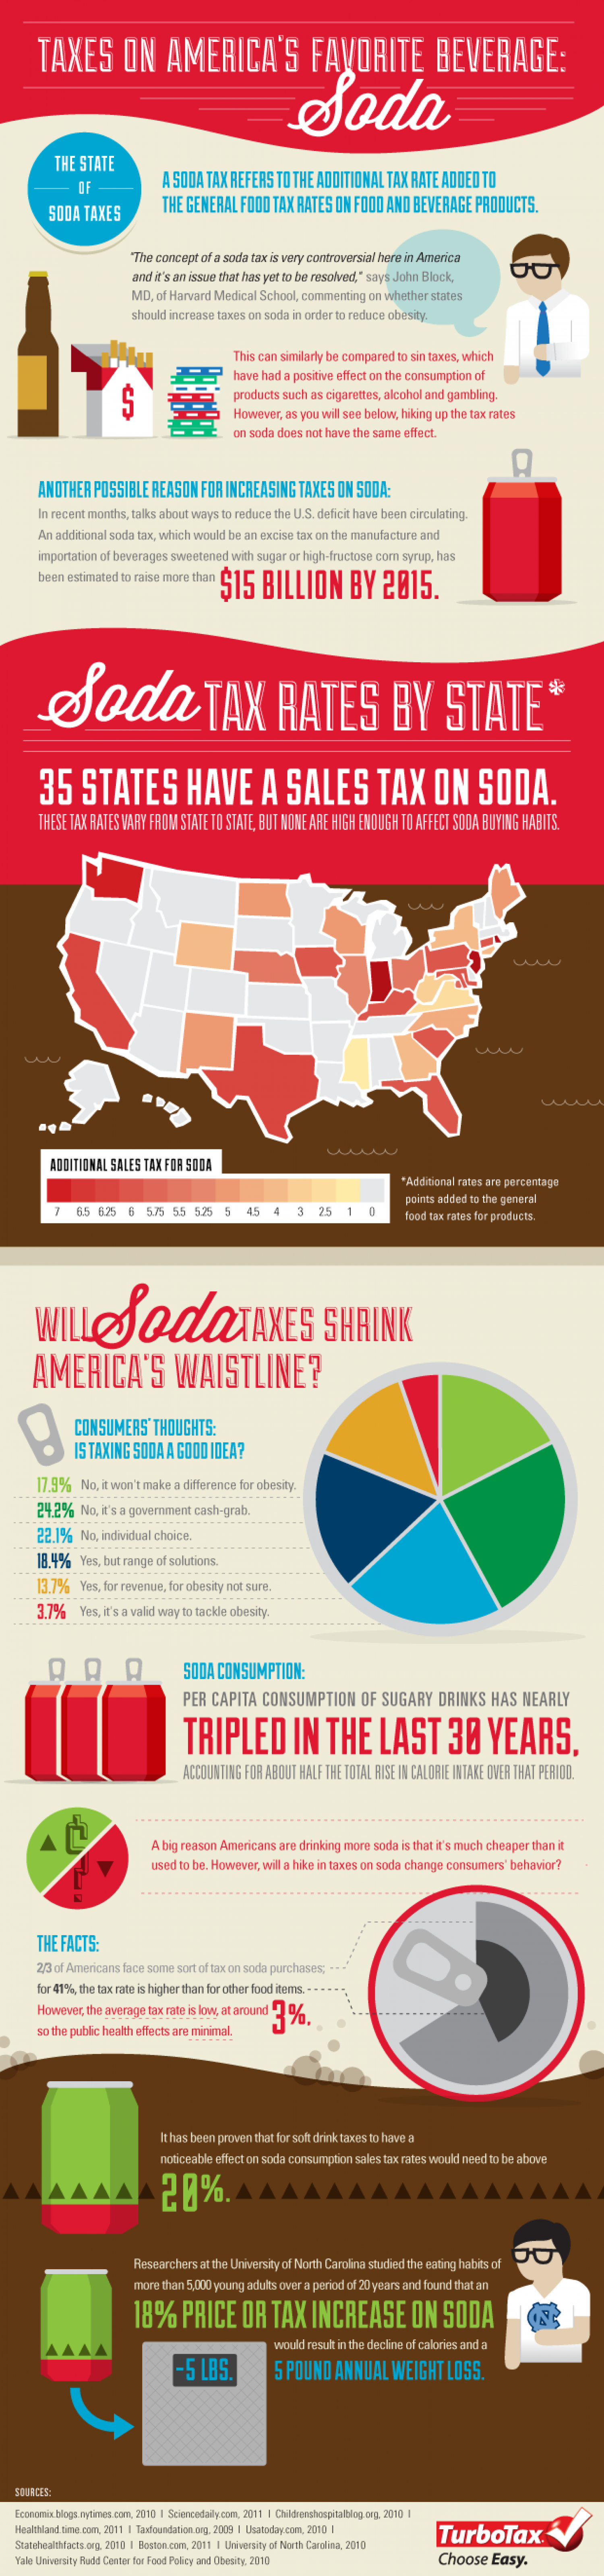 Taxes on Americas Favourite Beverage: Soda Infographic